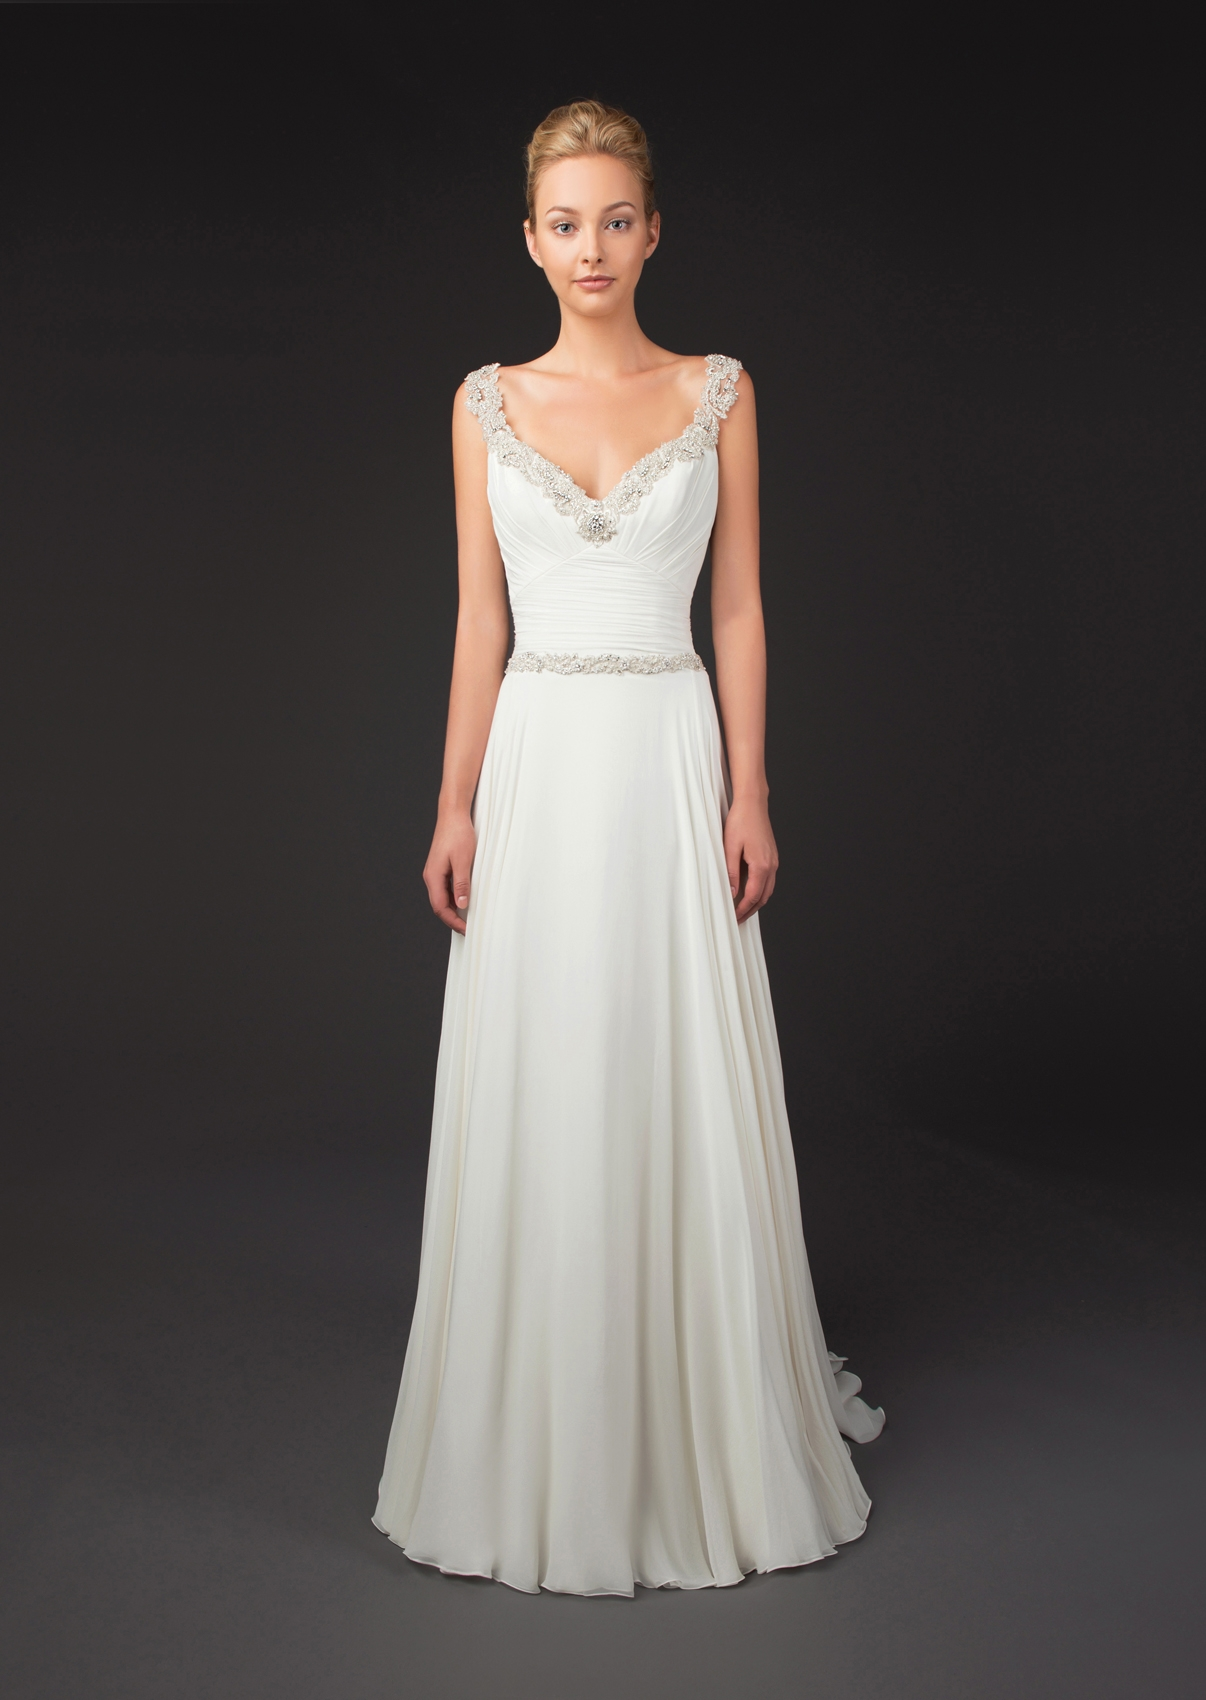 winnie-couture-wedding-dresses-fall-2014-diamond-label-collection-33-01202014